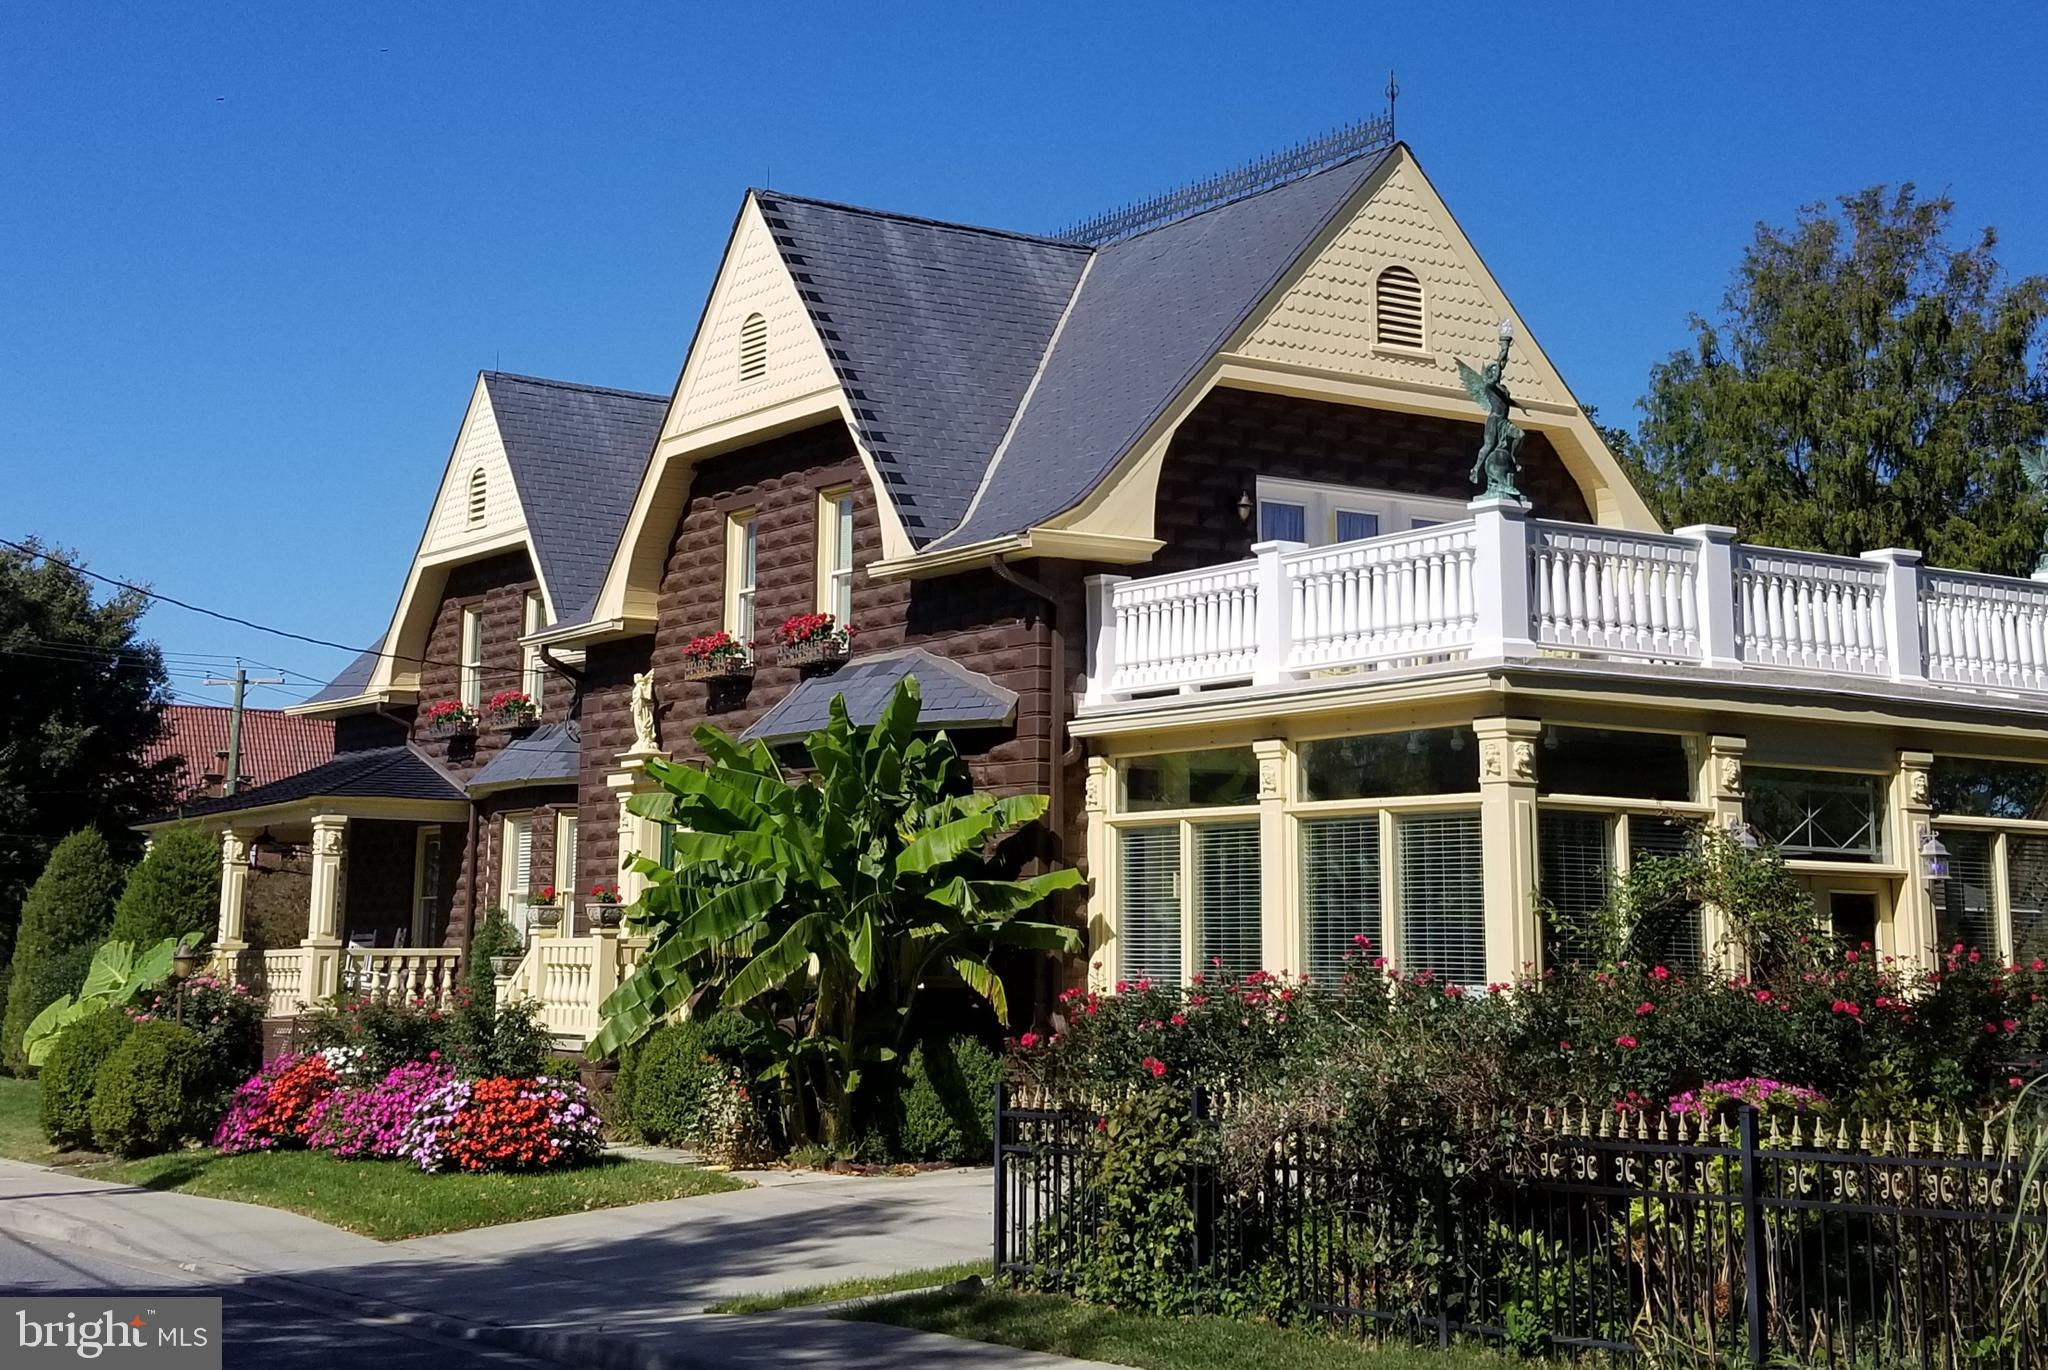 Beautifully maintained home in the heart of downtown Lewes.  Just steps away from all the shops and restaurants in this charming coastal town.  This 5 bedroom, 4.5 bath home located on the corner of Franklin and Kings Highway is a real treasure.  Inside you will find crown molding, ceiling medallions, wainscoting, double hung windows, hardwood and tile flooring, breathtaking chandeliers and more!!  The kitchen has two sinks, garbage disposal, gas stovetop and oven, quartz countertops, built in fridge, and a kitchen island.  There is a formal dining room and an all season sun porch overlooking the koi pond and fountain.  On the second floor is a large master bedroom which opens up to a large deck overlooking the backyard as well as 3 more large bedrooms.  Downstairs you will find a finished basement complete with bar, viewing area, and a full bathroom.  There is also additional storage in the unfinished basement.  This is a home you definitely will want to see today!